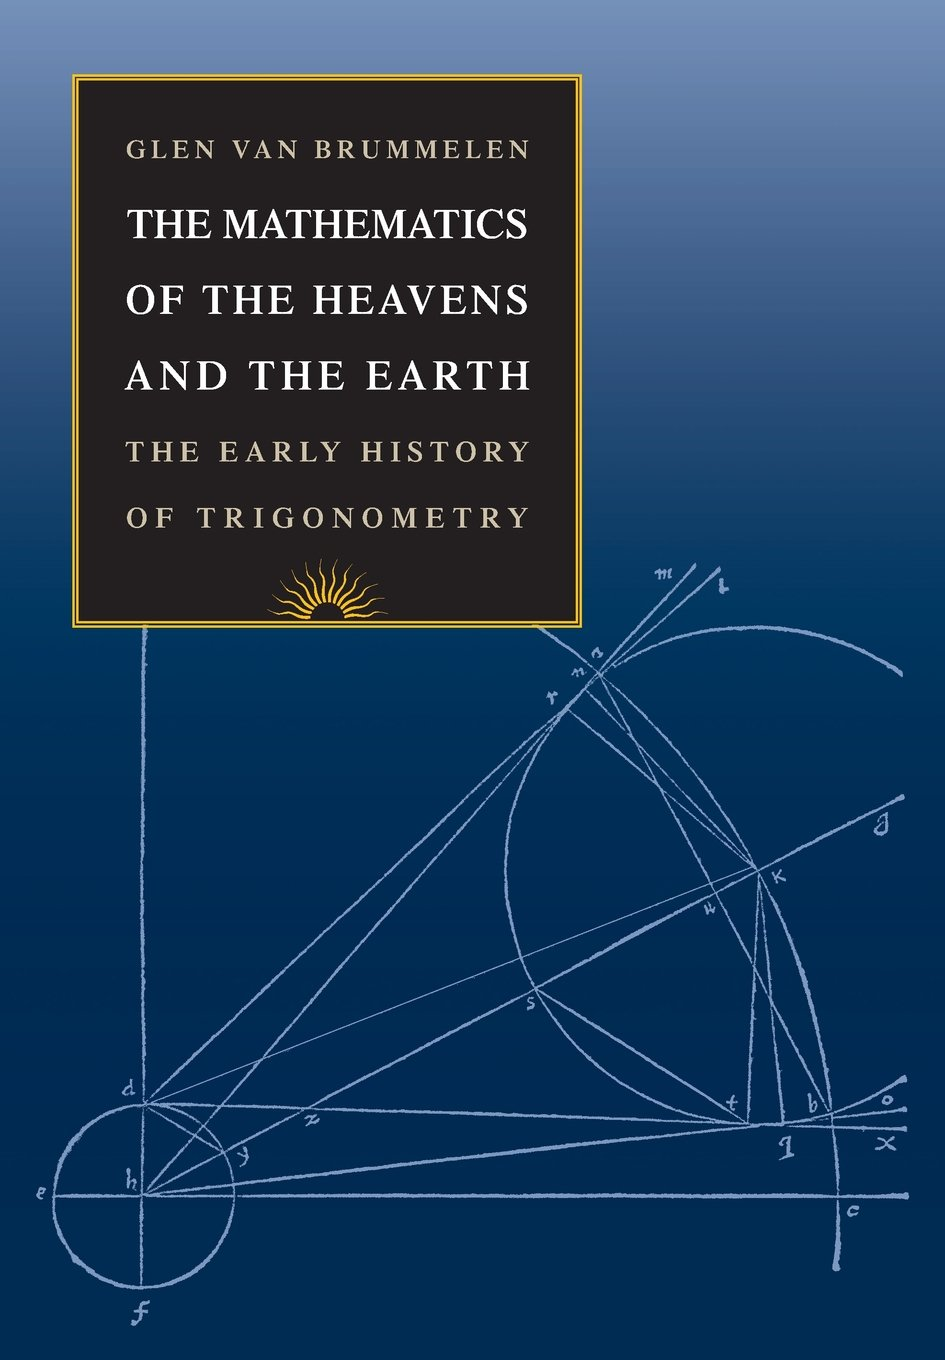 The Mathematics Of The Heavens And The Earth  The Early History Of Trigonometry